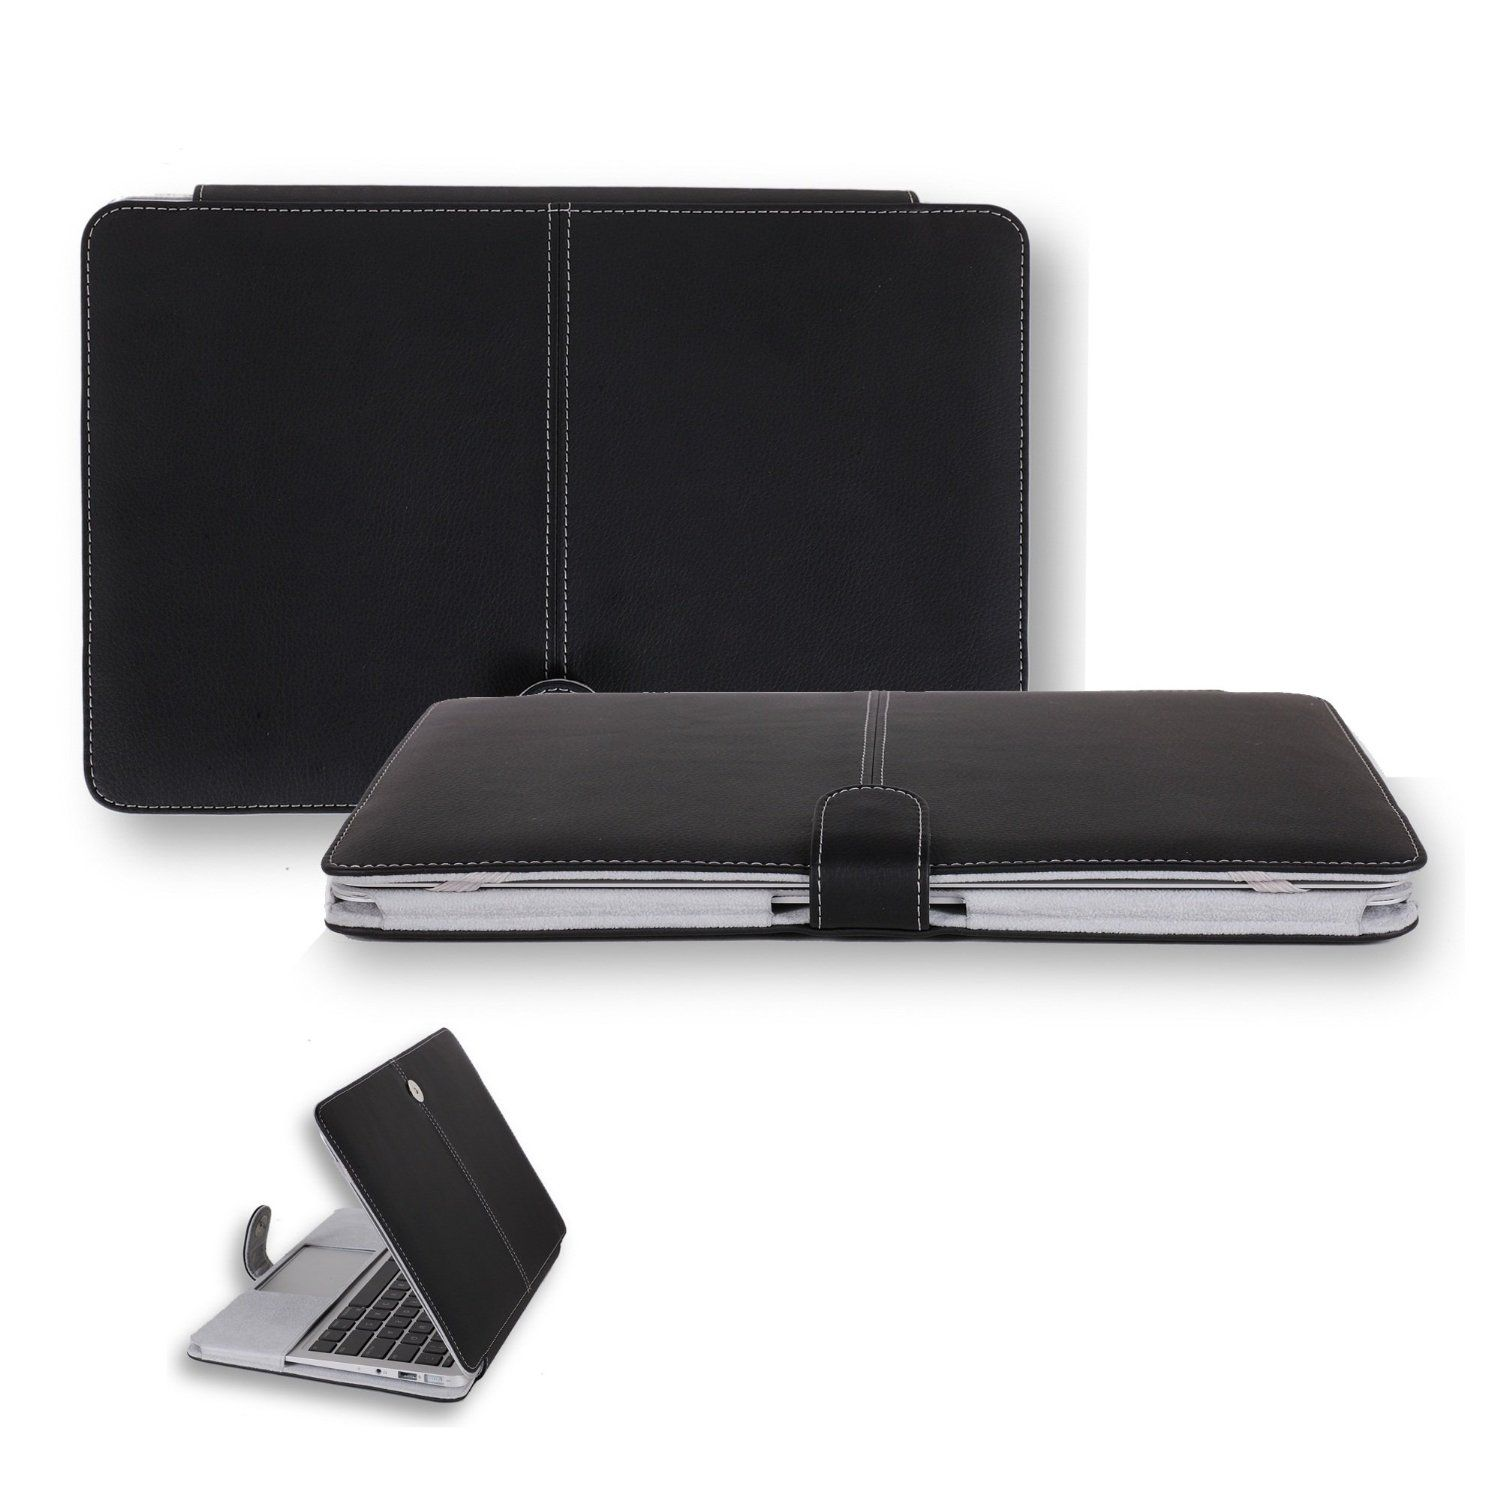 new product 18cd5 2c186 Amazon.com: CaseCrown Book Cover Clip On Case (Black) for 13 Inch ...